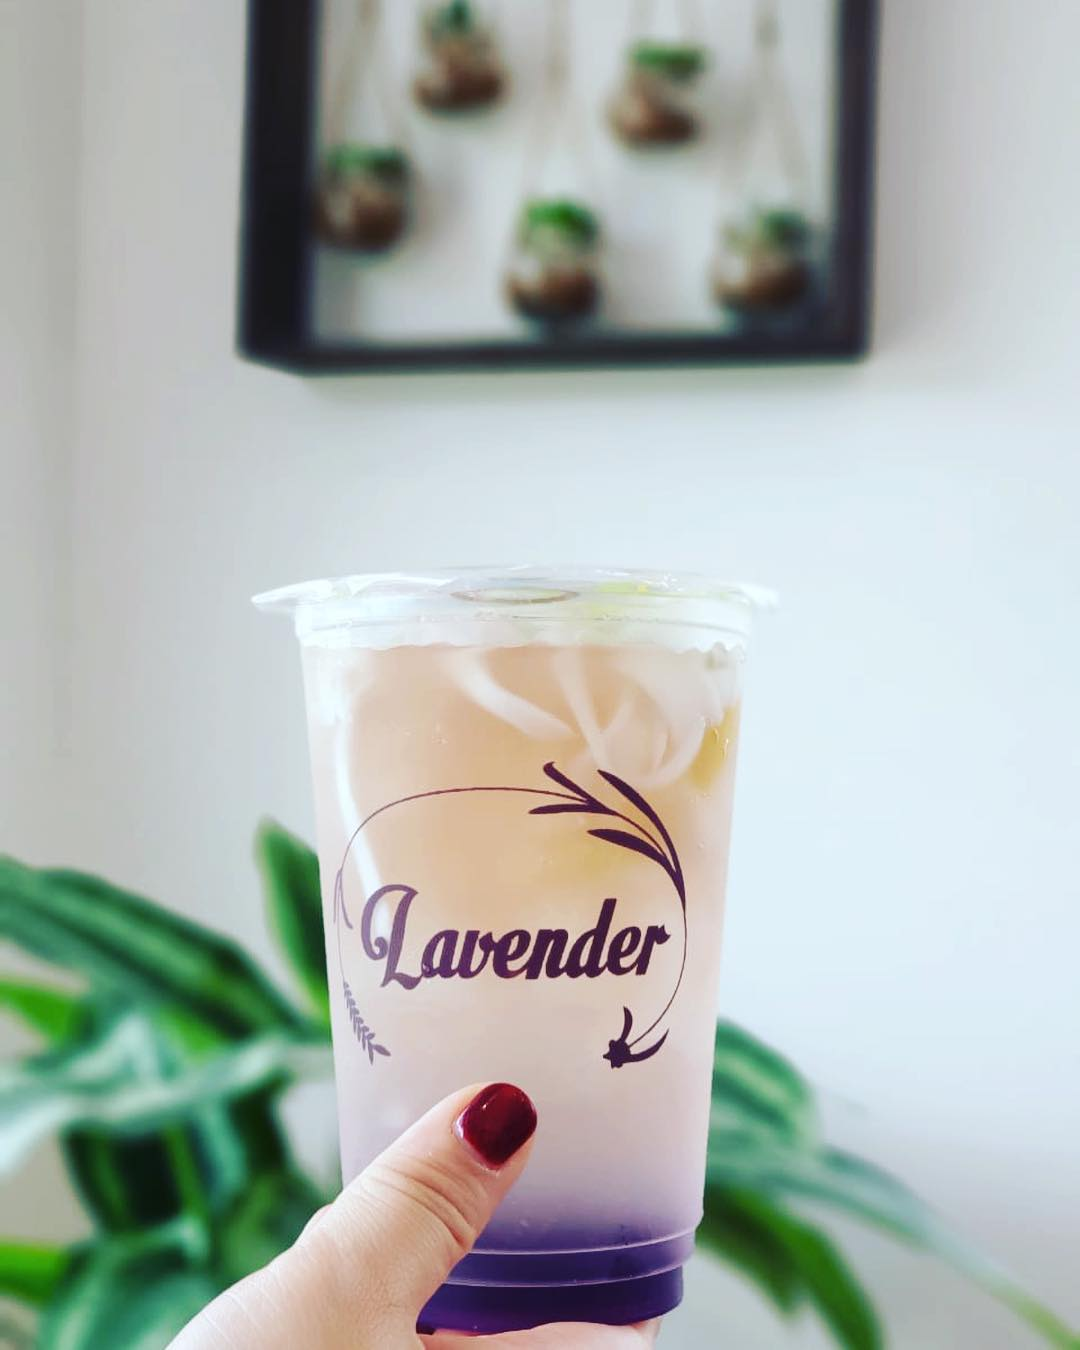 12. summer detox drinks  - Go Classy With The Lady Lavender%E2%80%99s Mocktail